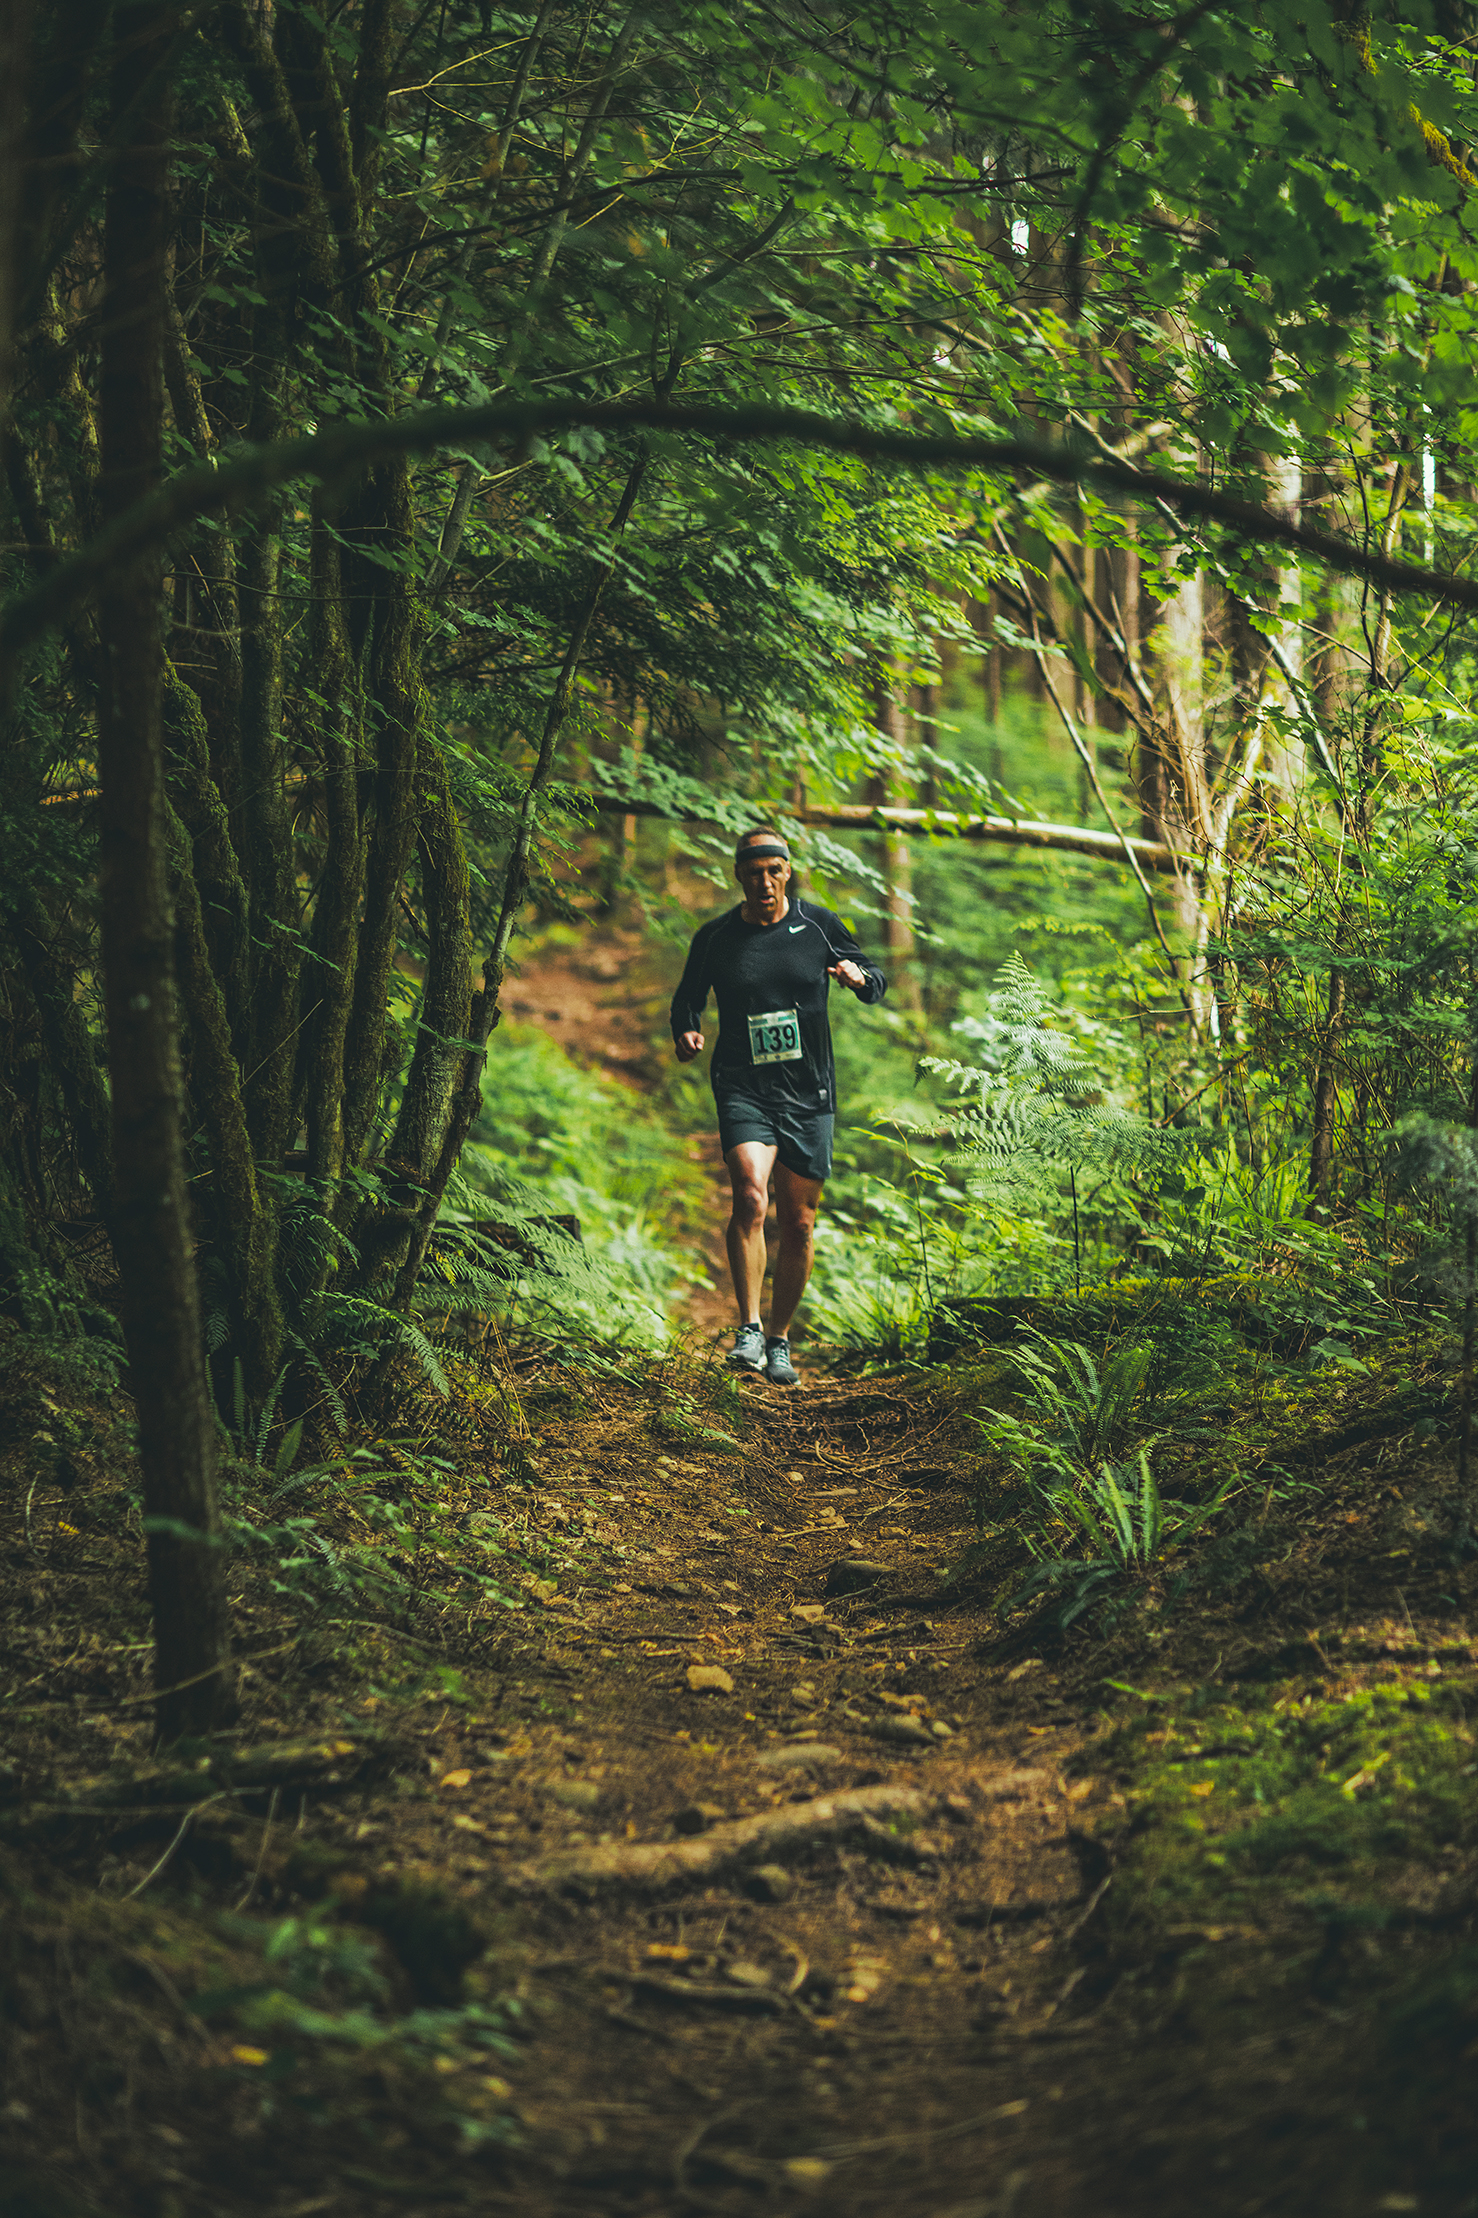 Fraser Valley Trail Races - Bear Mountain - IMG_1855 by Brice Ferre Studio - Vancouver Portrait Adventure and Athlete Photographer.jpg